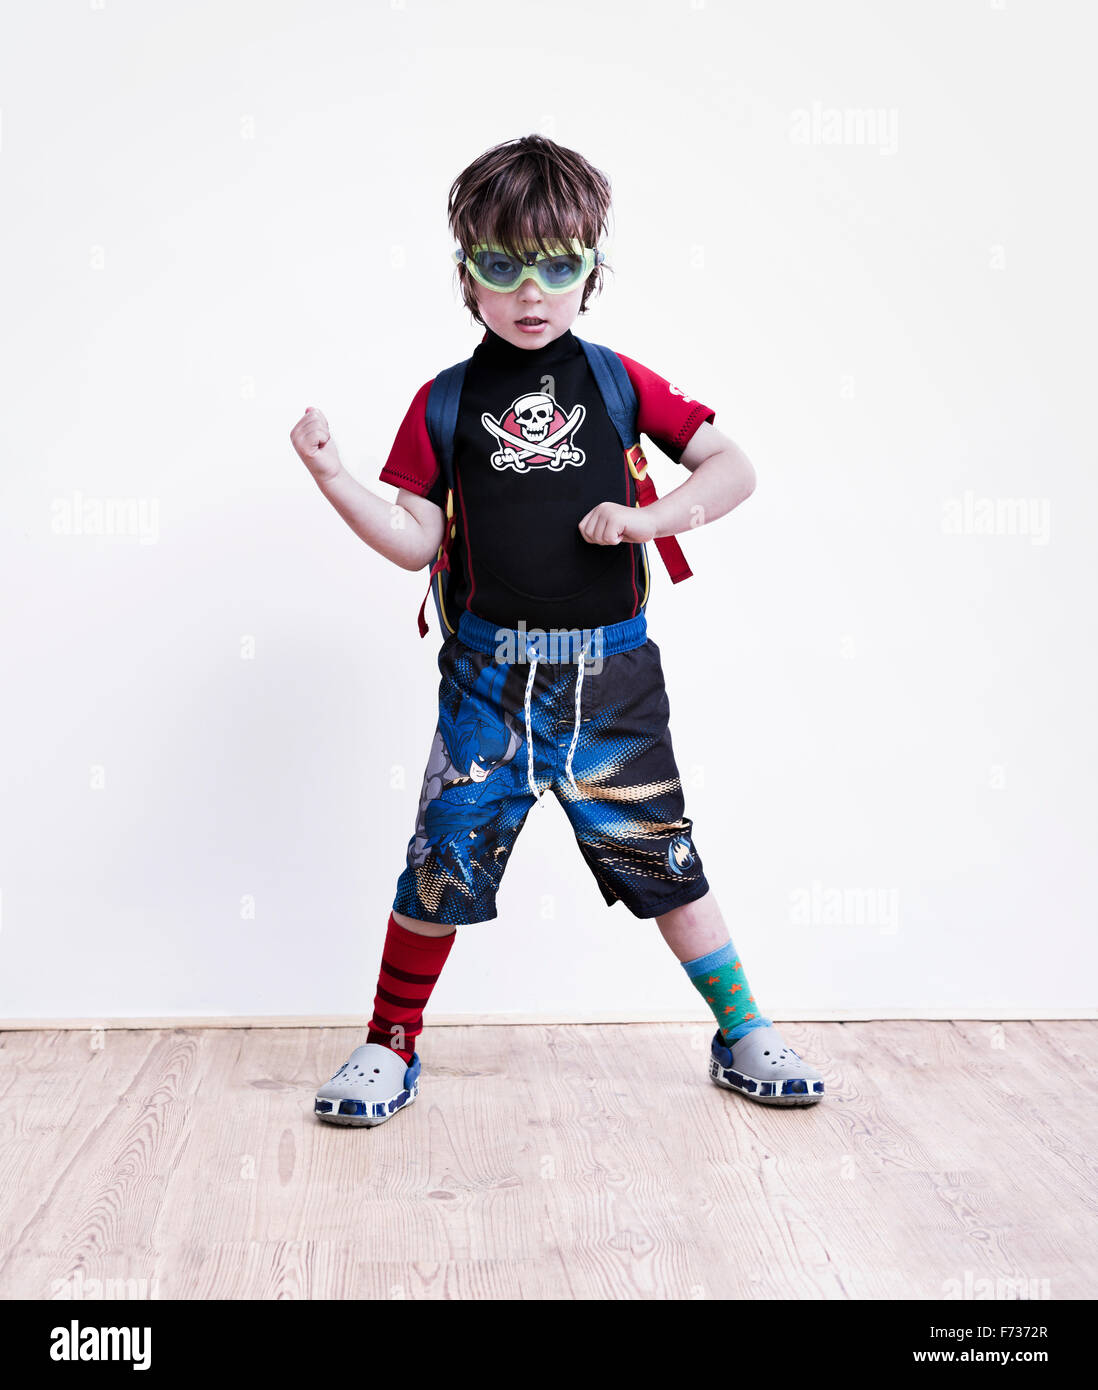 A boy standing with his legs apart posing in fancy dress, wearing a pirate tee-shirt, eye goggles and long shorts. - Stock Image